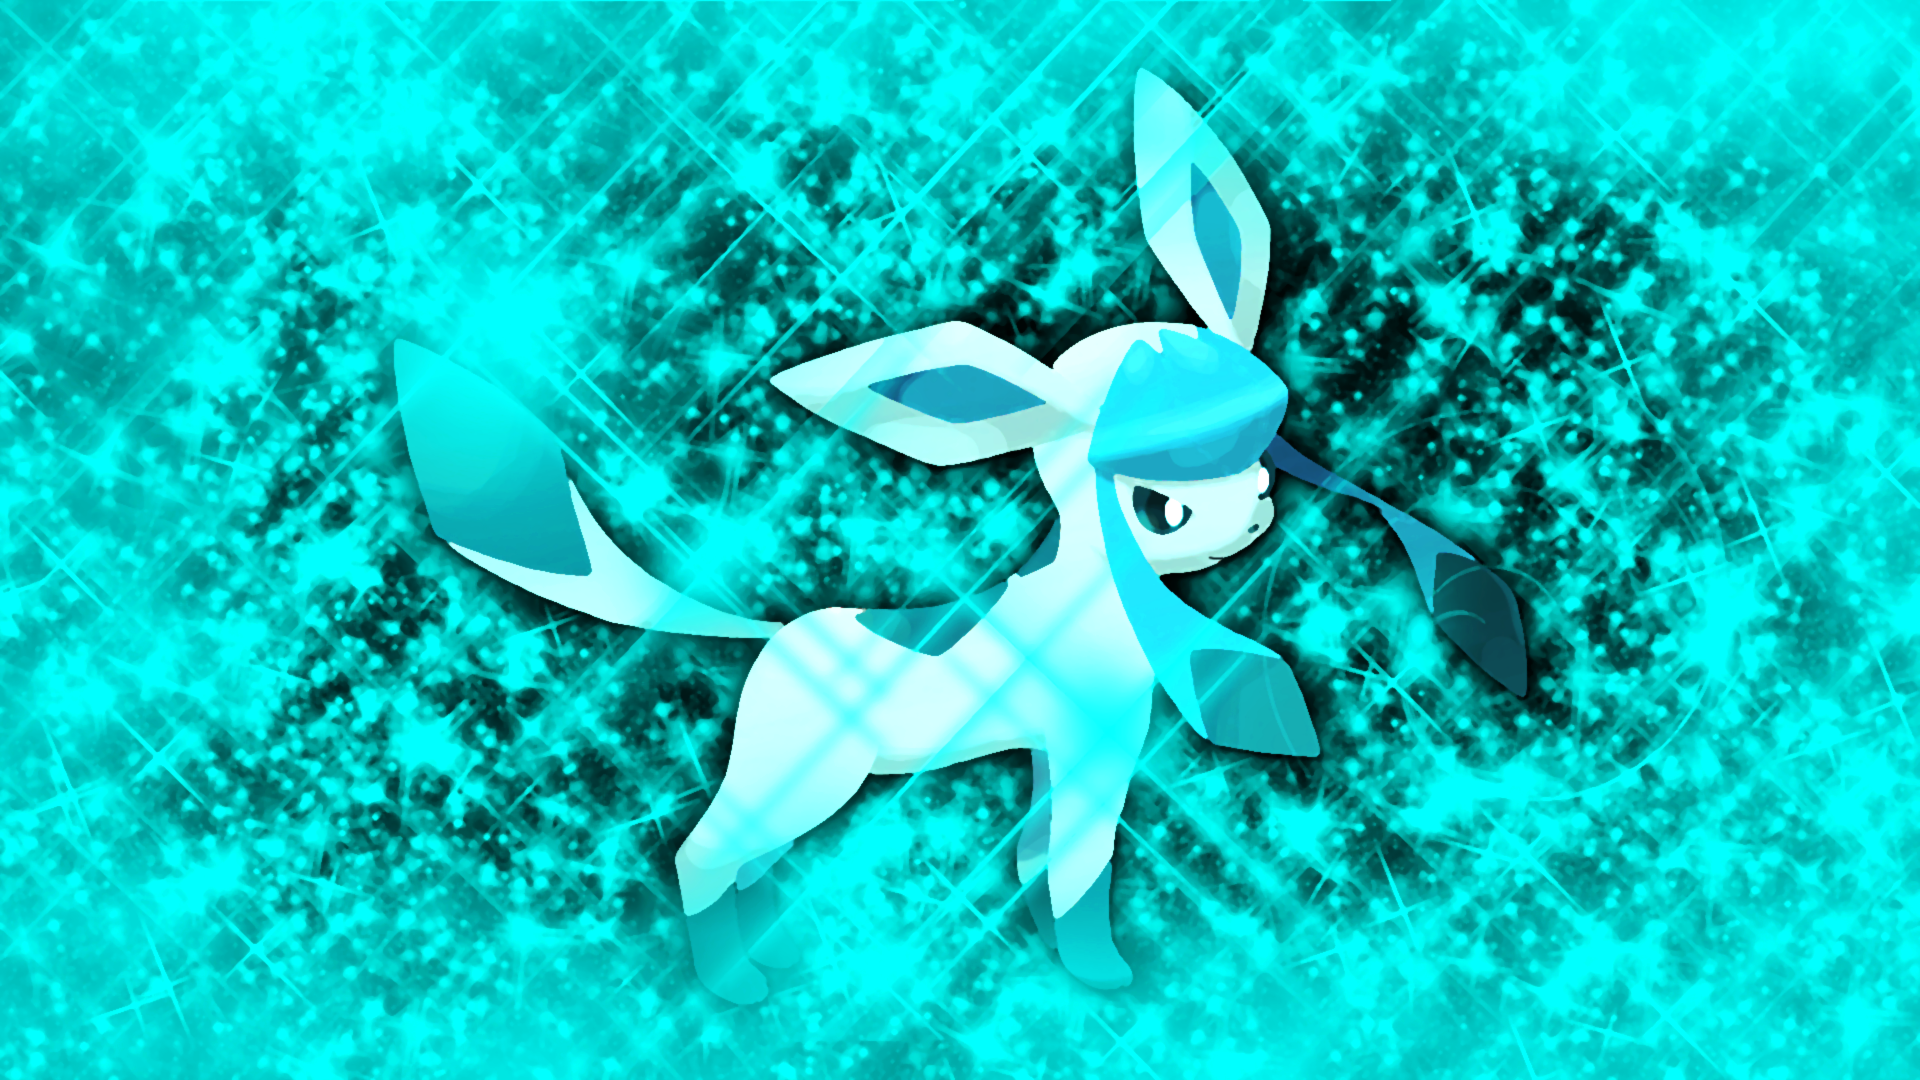 Glaceon Wallpaper by Glench on DeviantArt